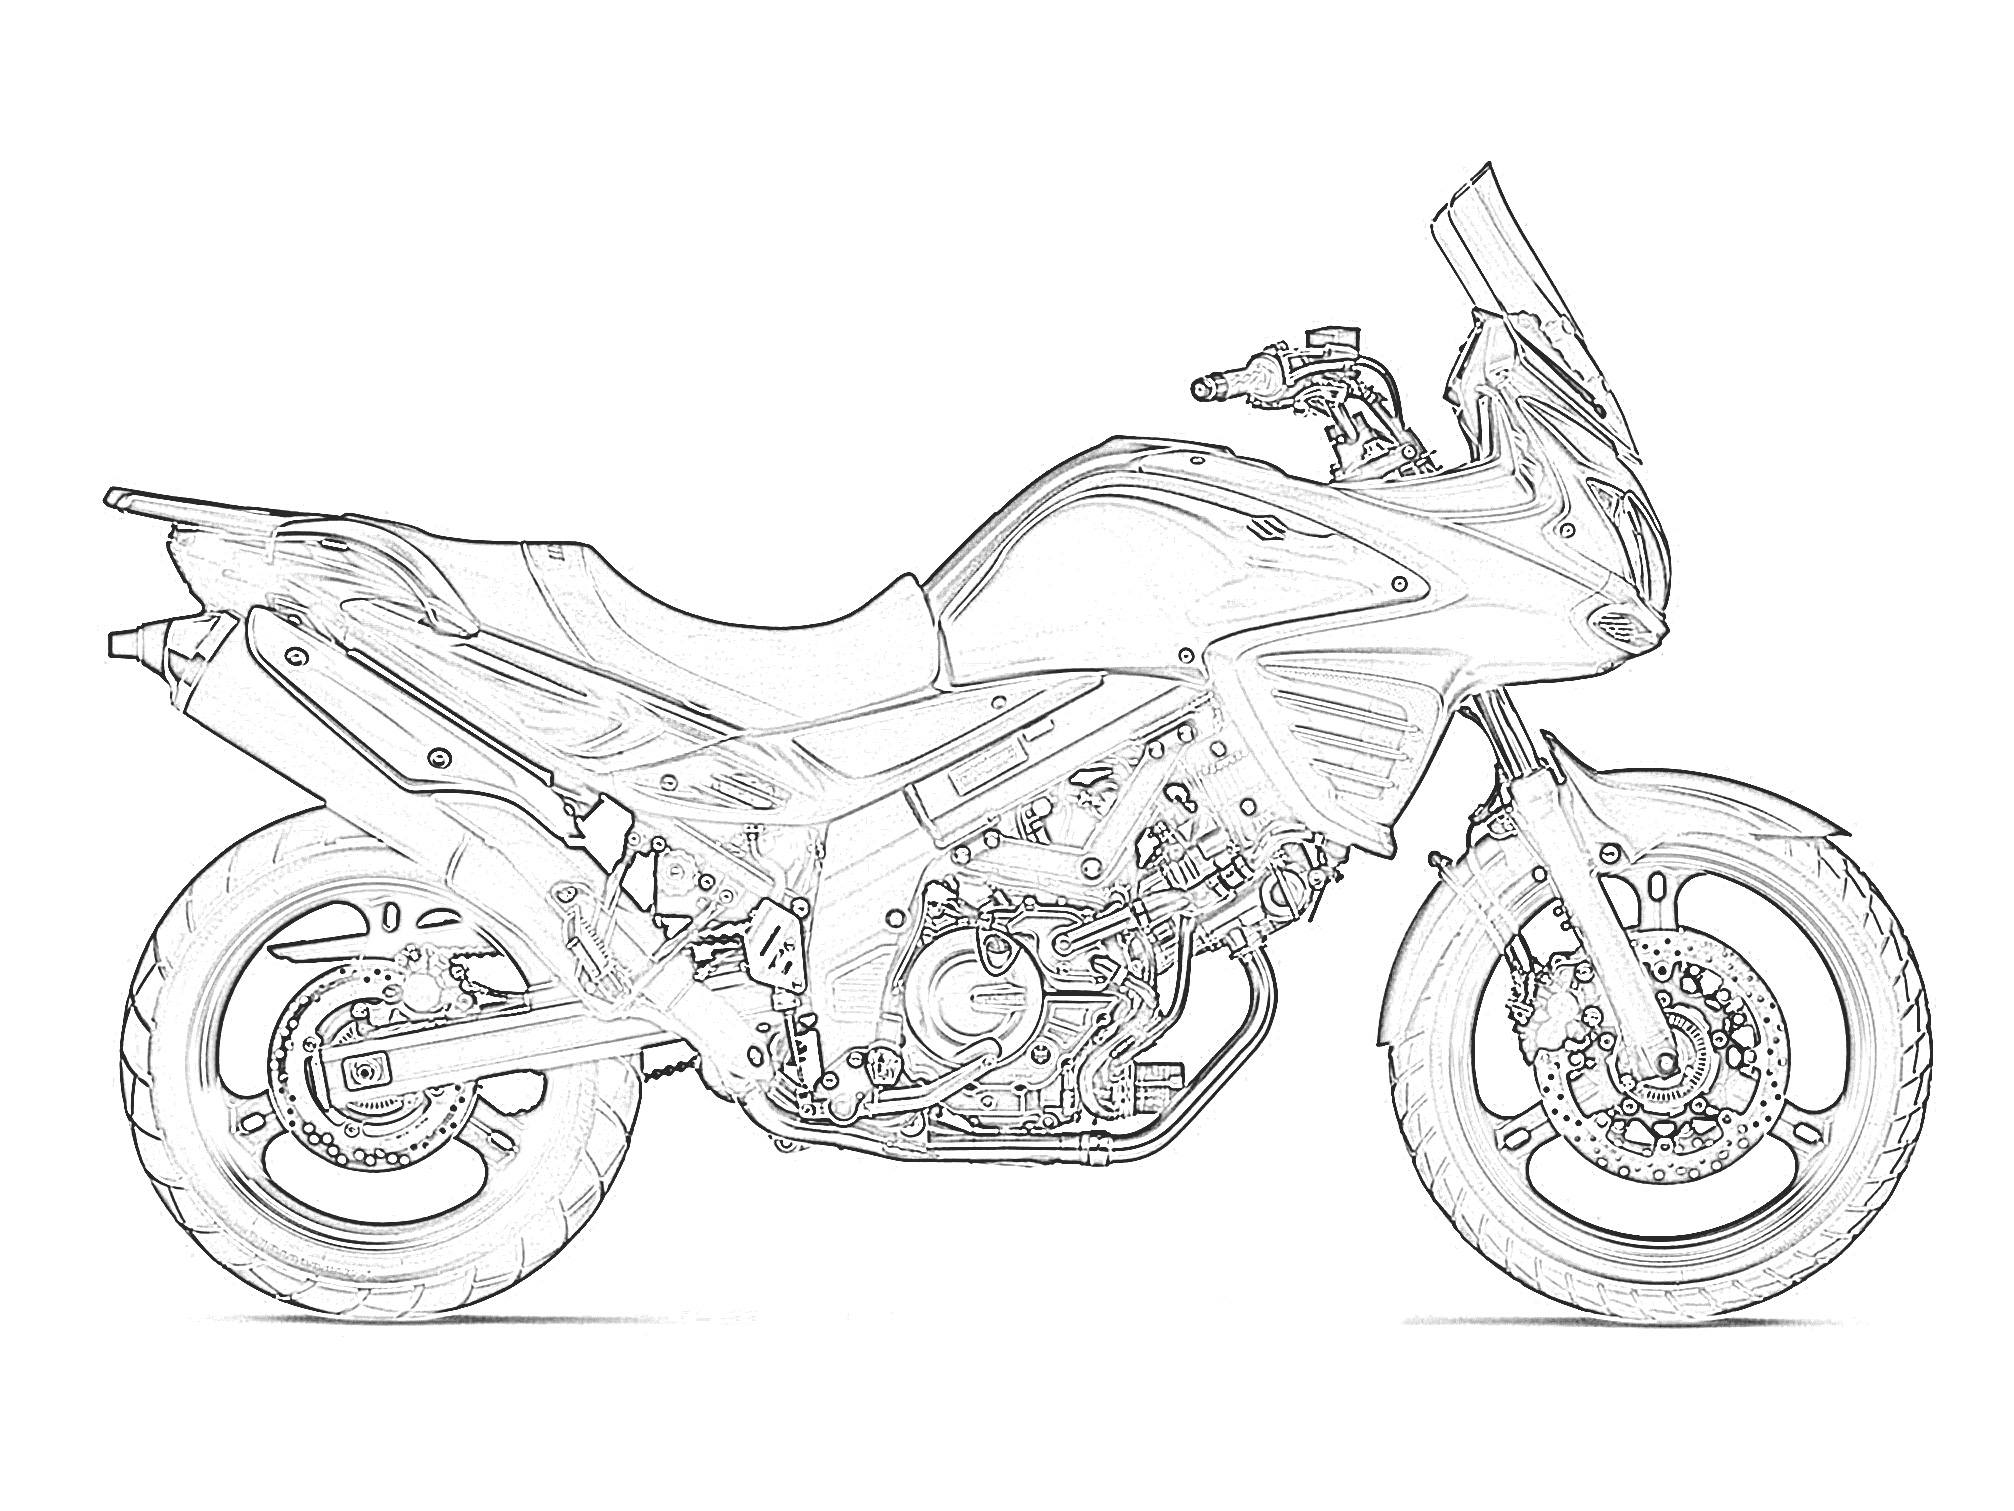 motorbike colouring printables free motorcycle coloring pages baps motorbike colouring 1 2